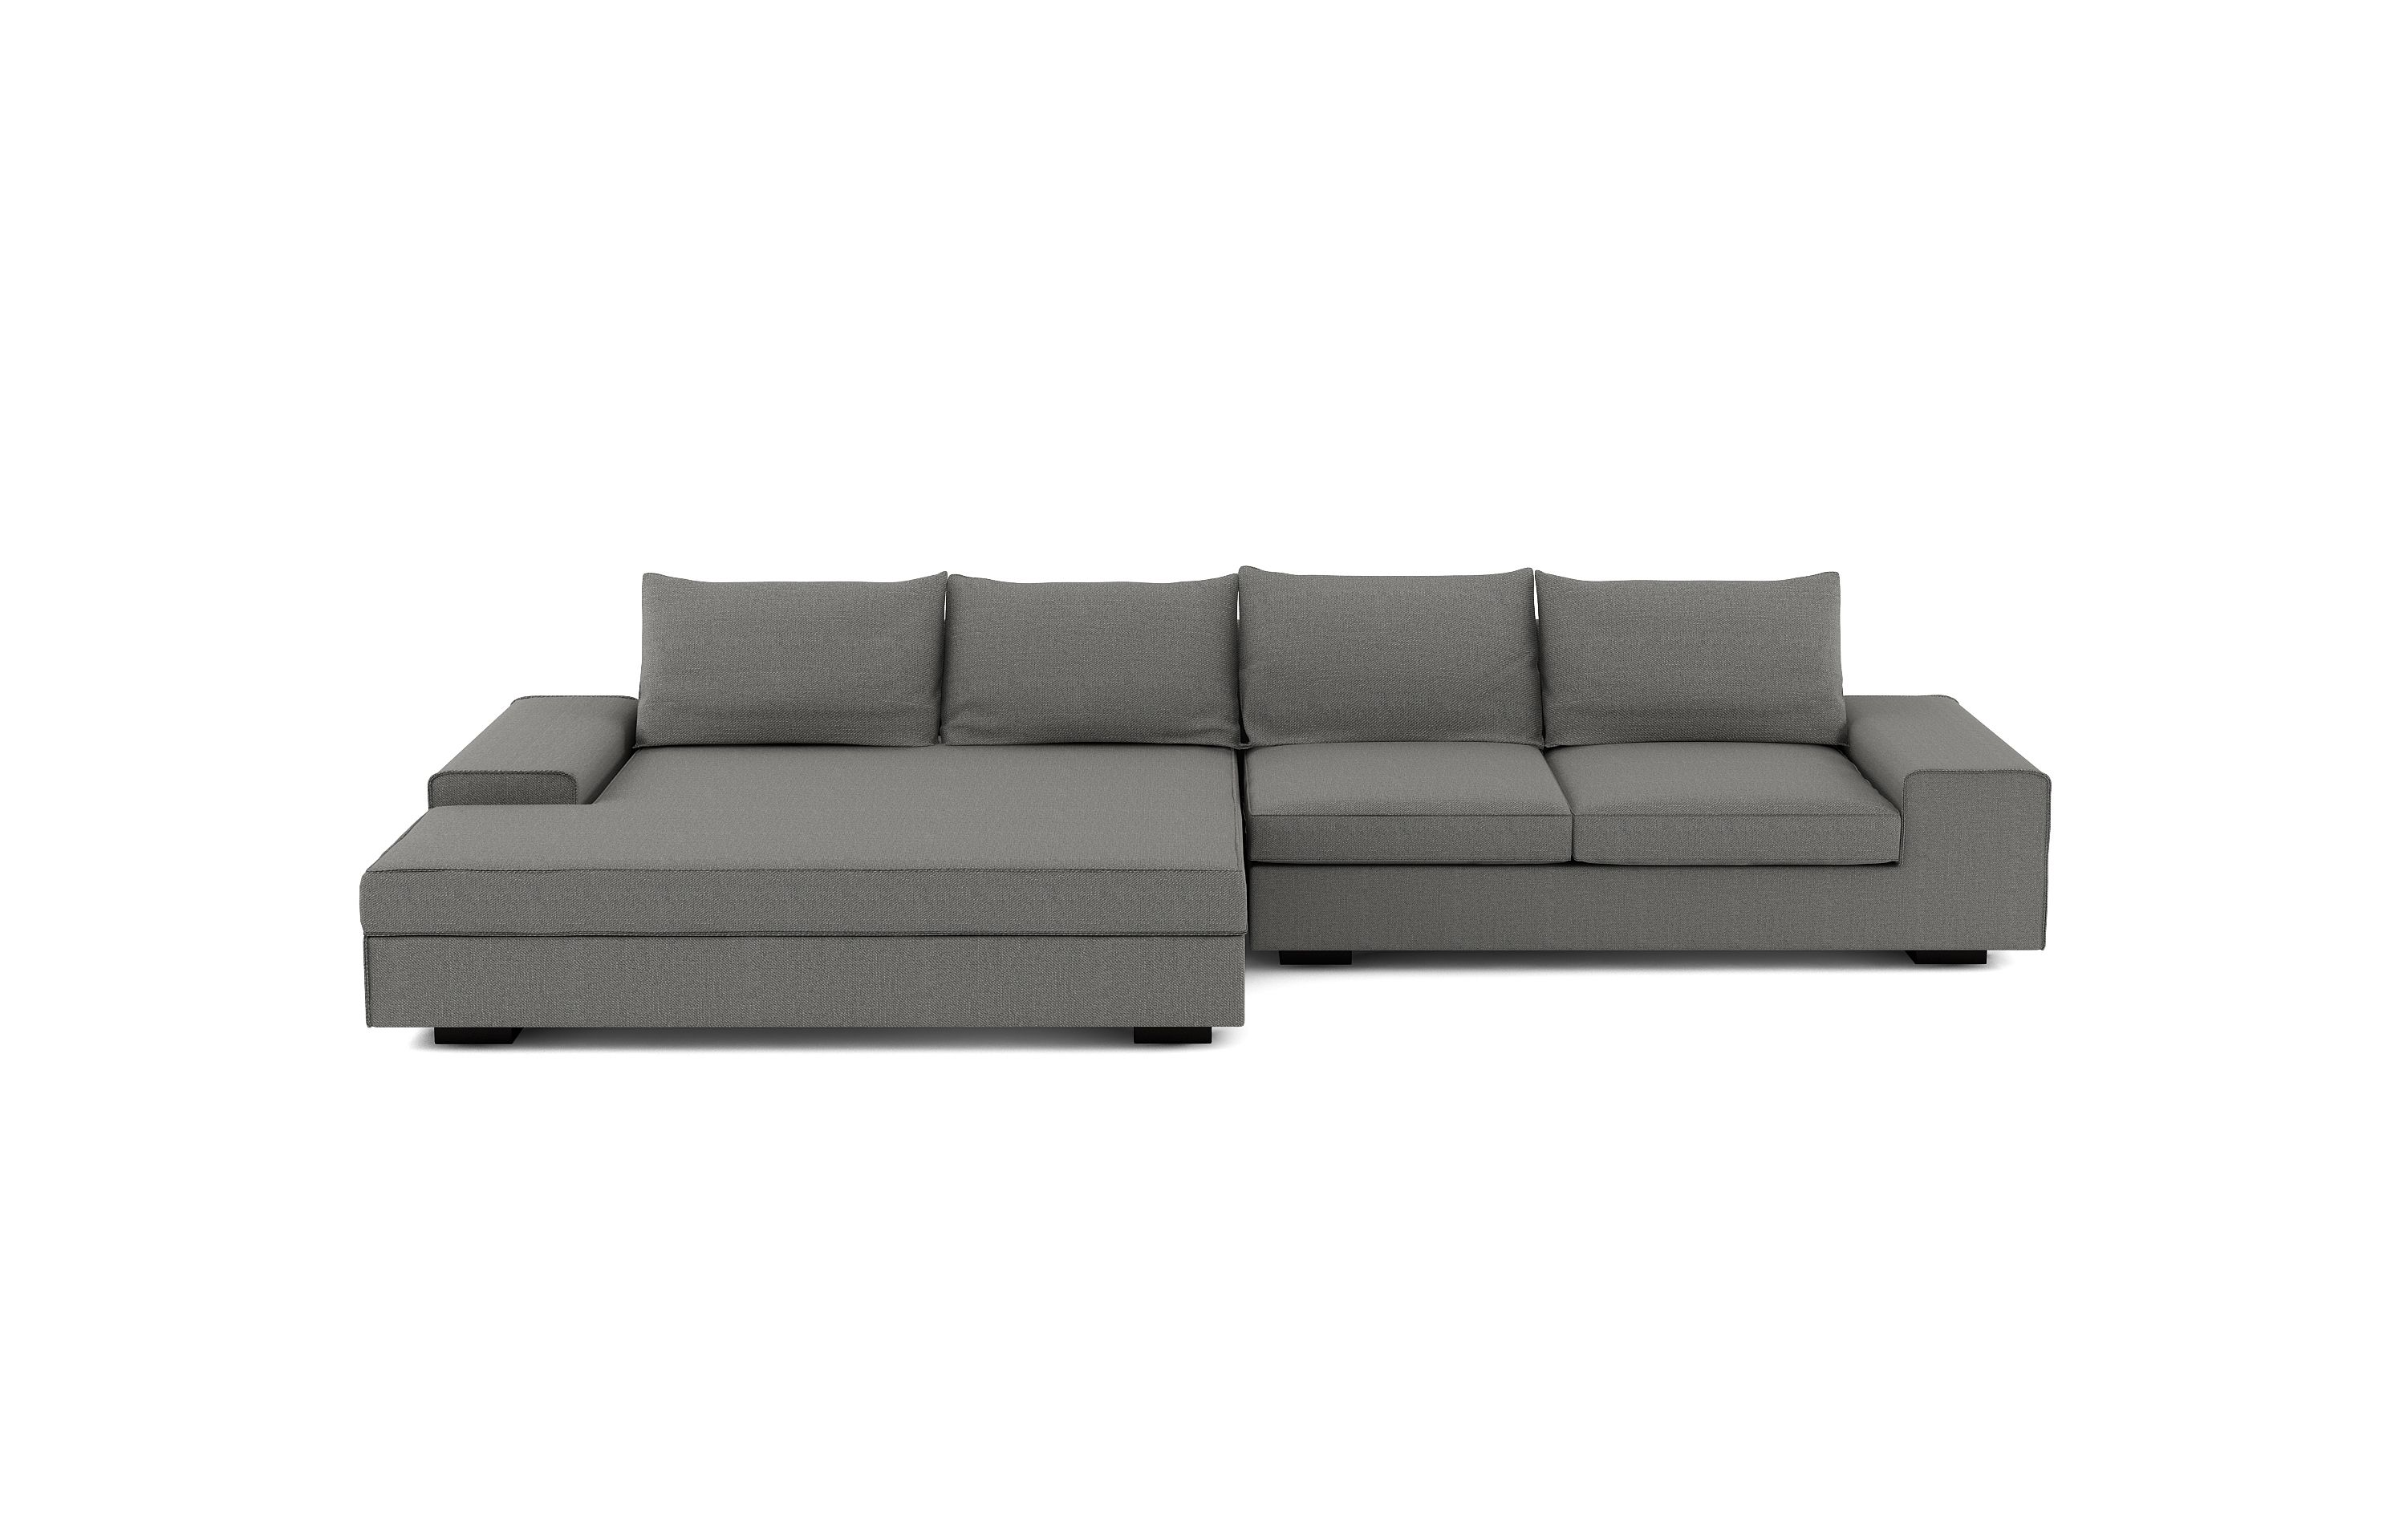 The Viesso Blumen Wide Chaise Sectional